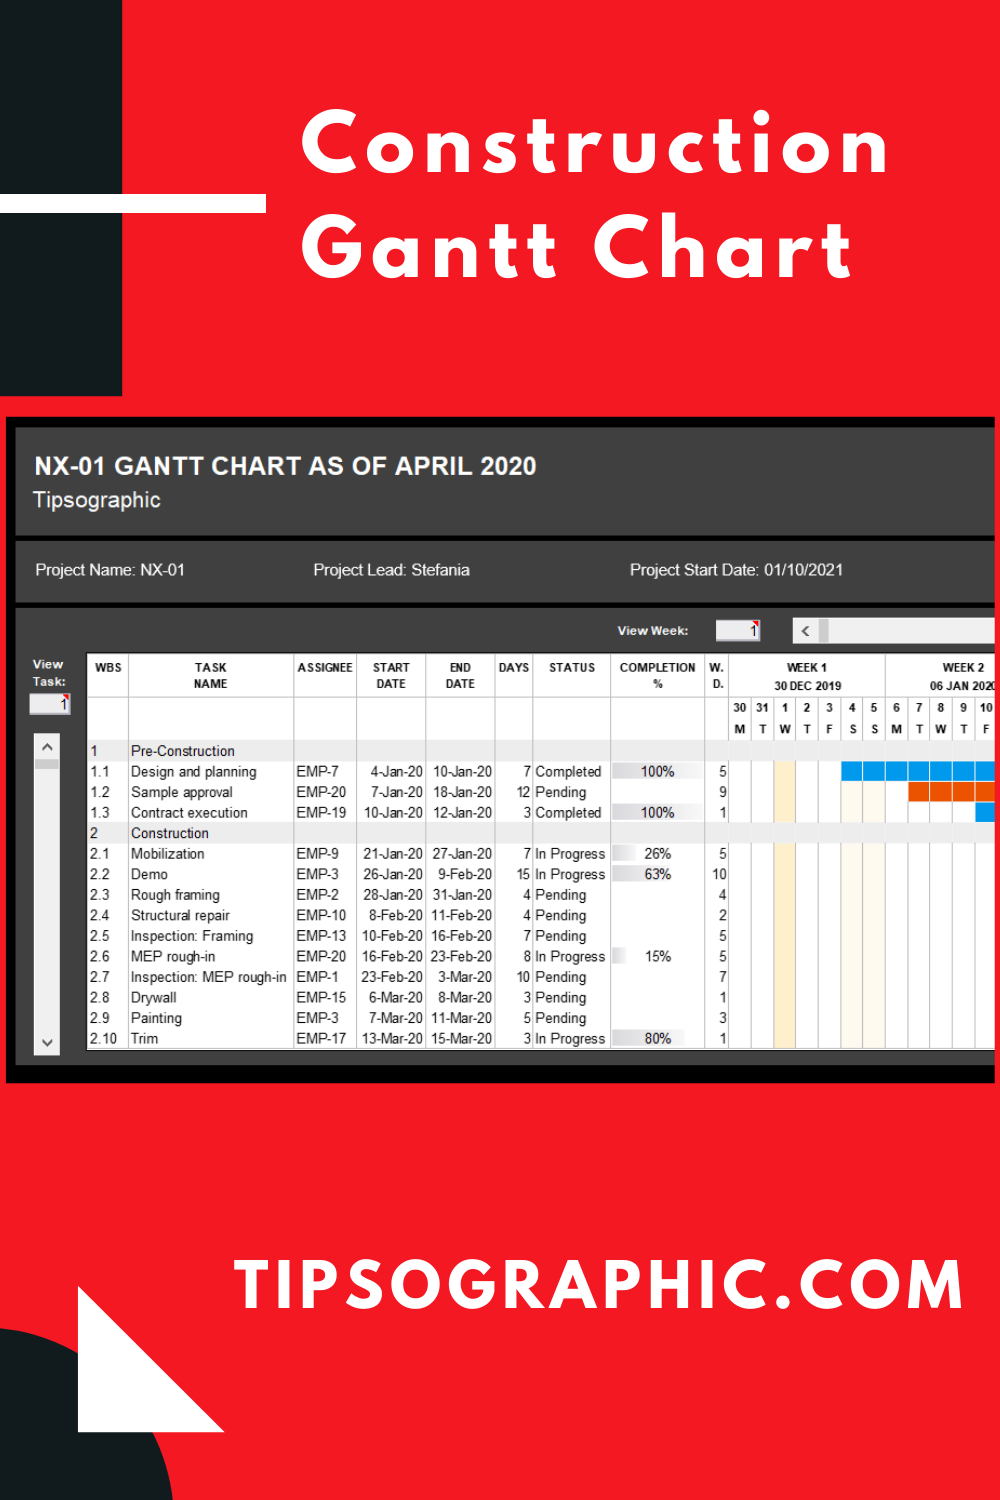 Construction Gantt Chart Template for Excel, Free Download